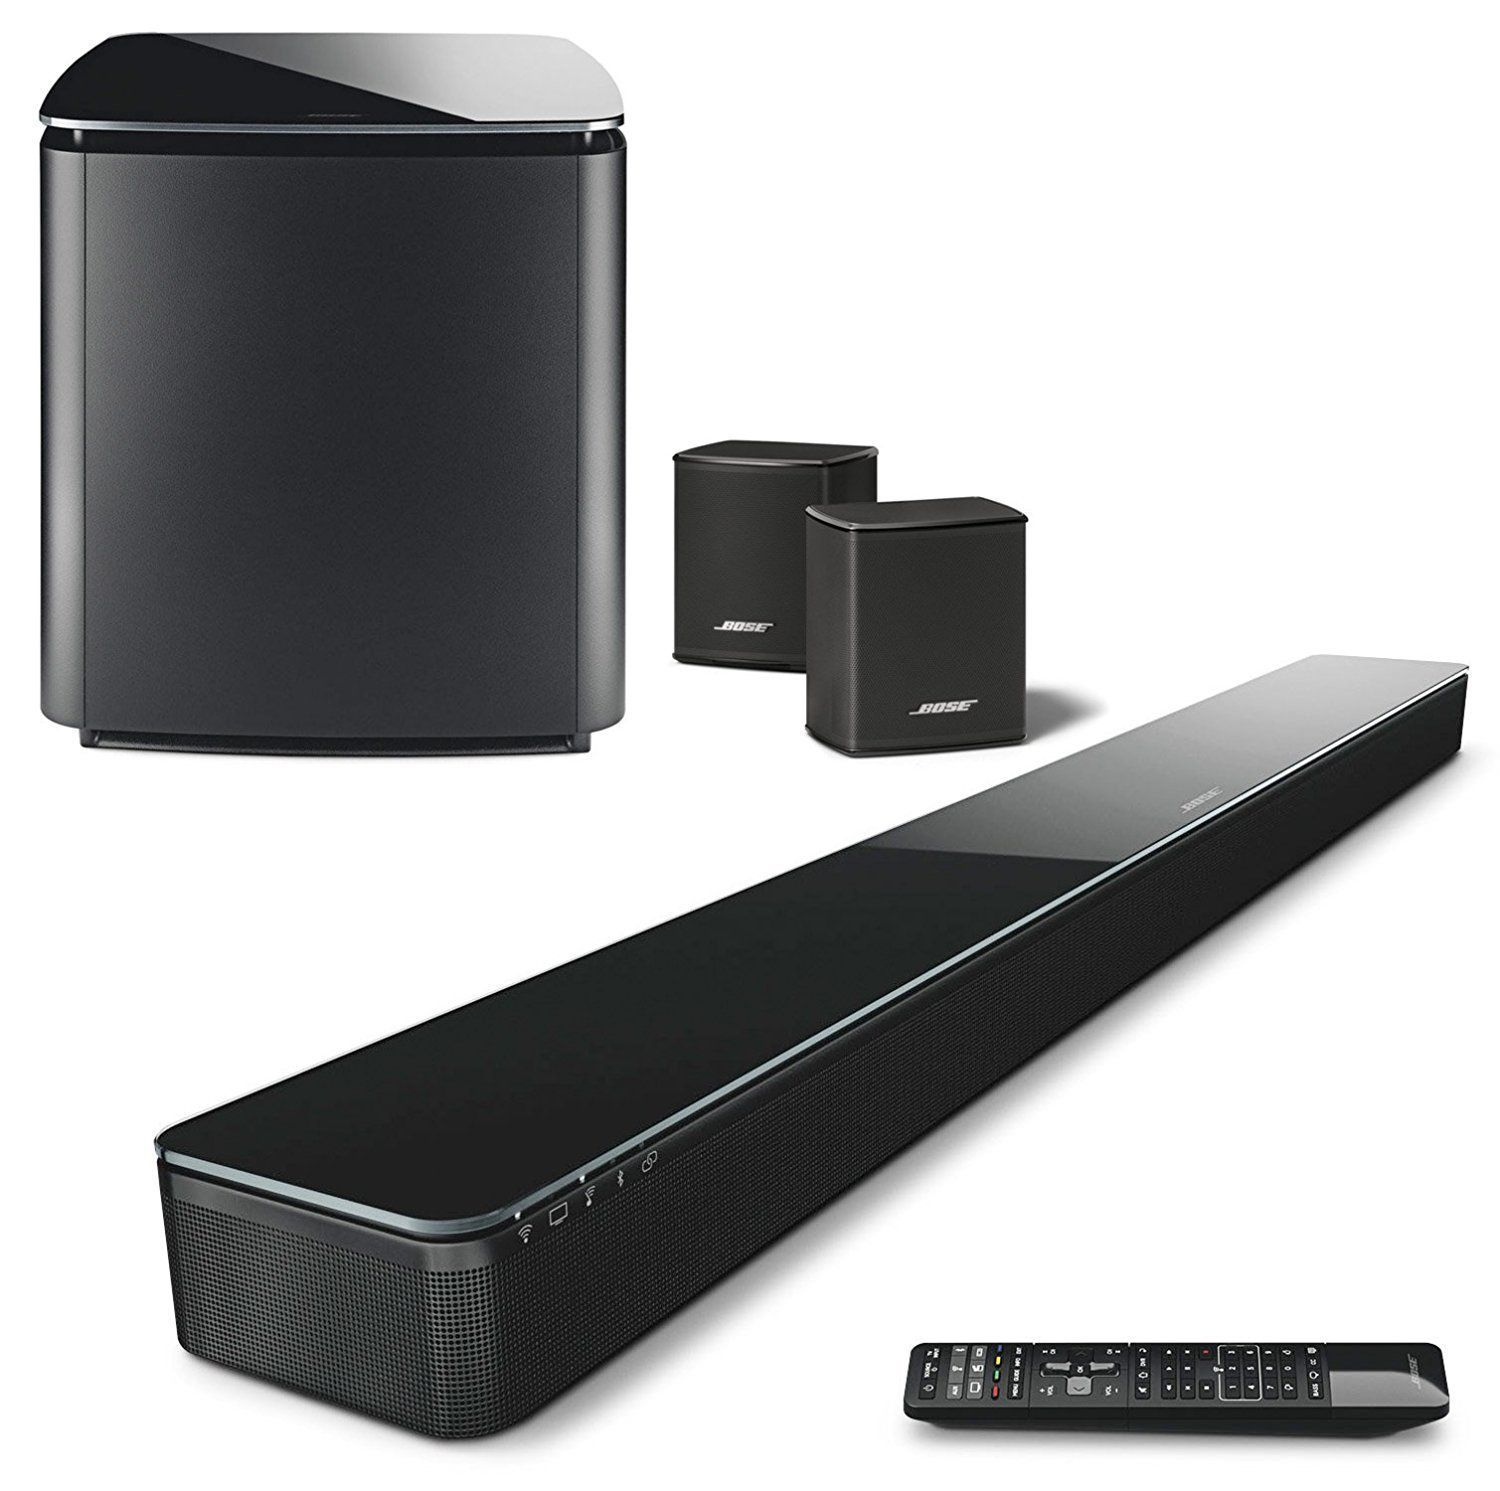 101056f5871 Check out the [Bose 5.1 Home Theater, SoundTouch 300, Acoustimass 300,  Virtually Invisible 300] reviewed on DigiMancave! Bose 5.1 Home Theater is  a sound ...